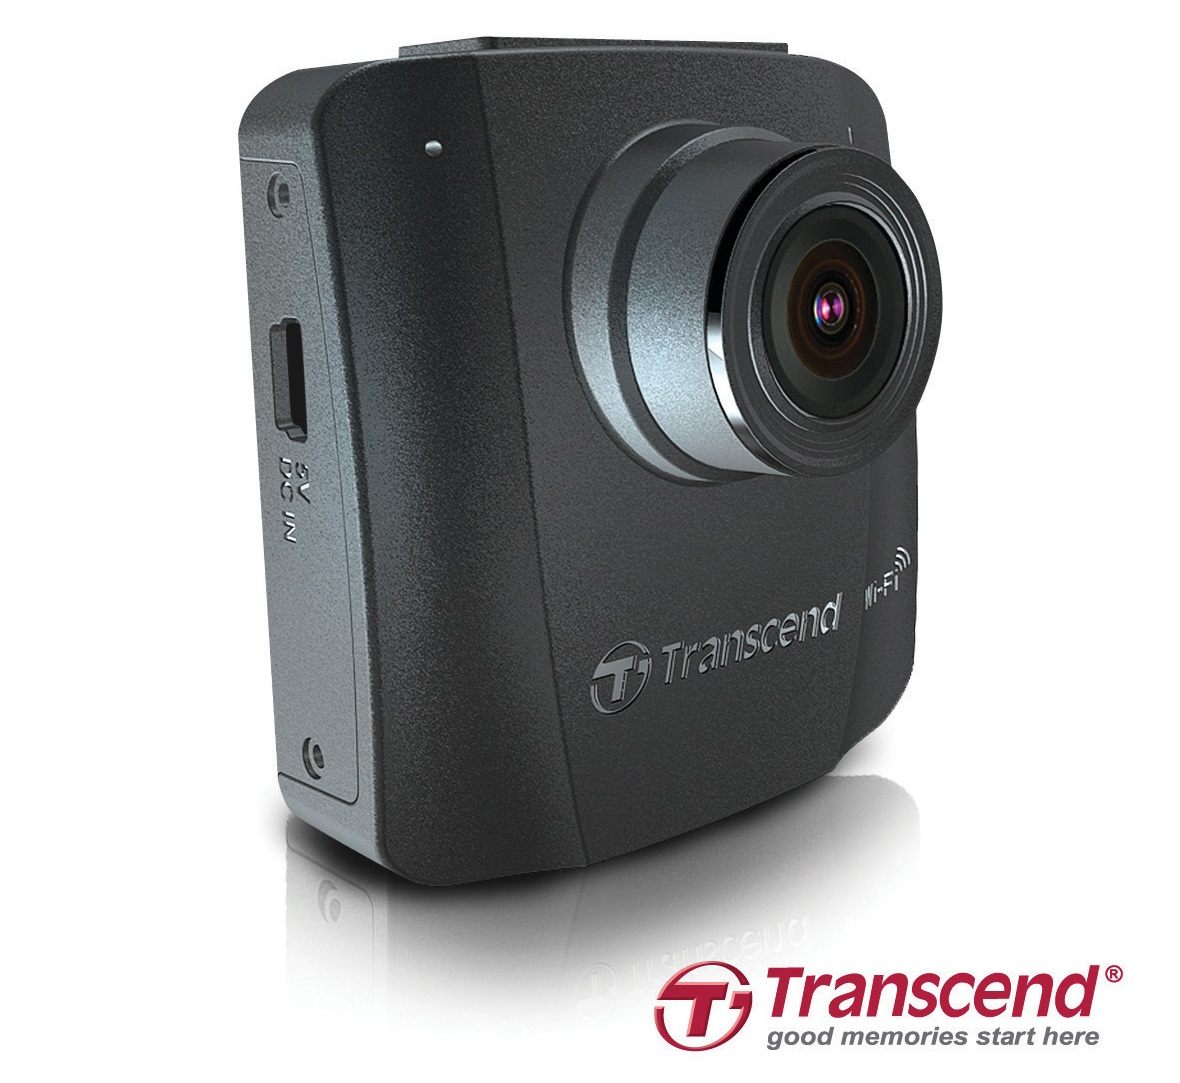 Transcend DrivePro 50 Car Video Recorder